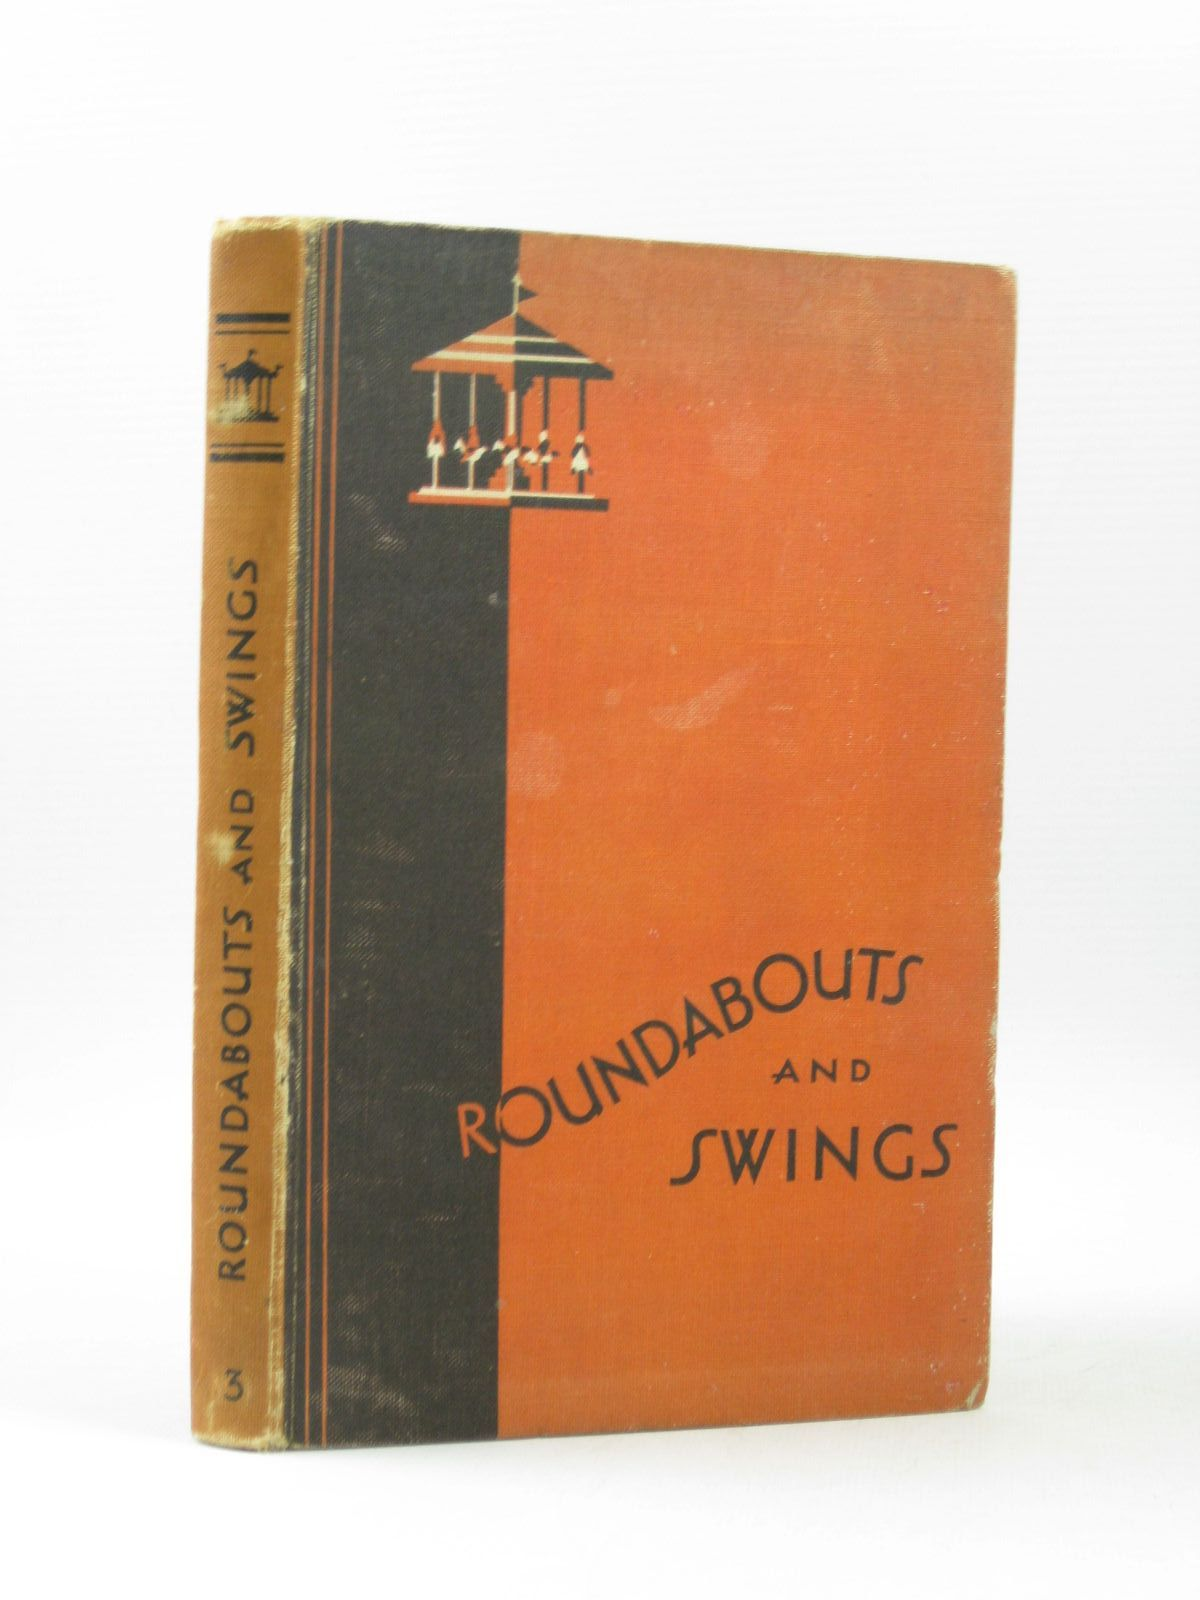 Photo of ROUNDABOUTS AND SWINGS written by Bradham, C. illustrated by Cable, W. Lindsay published by A. Wheaton & Co. Ltd. (STOCK CODE: 1503817)  for sale by Stella & Rose's Books